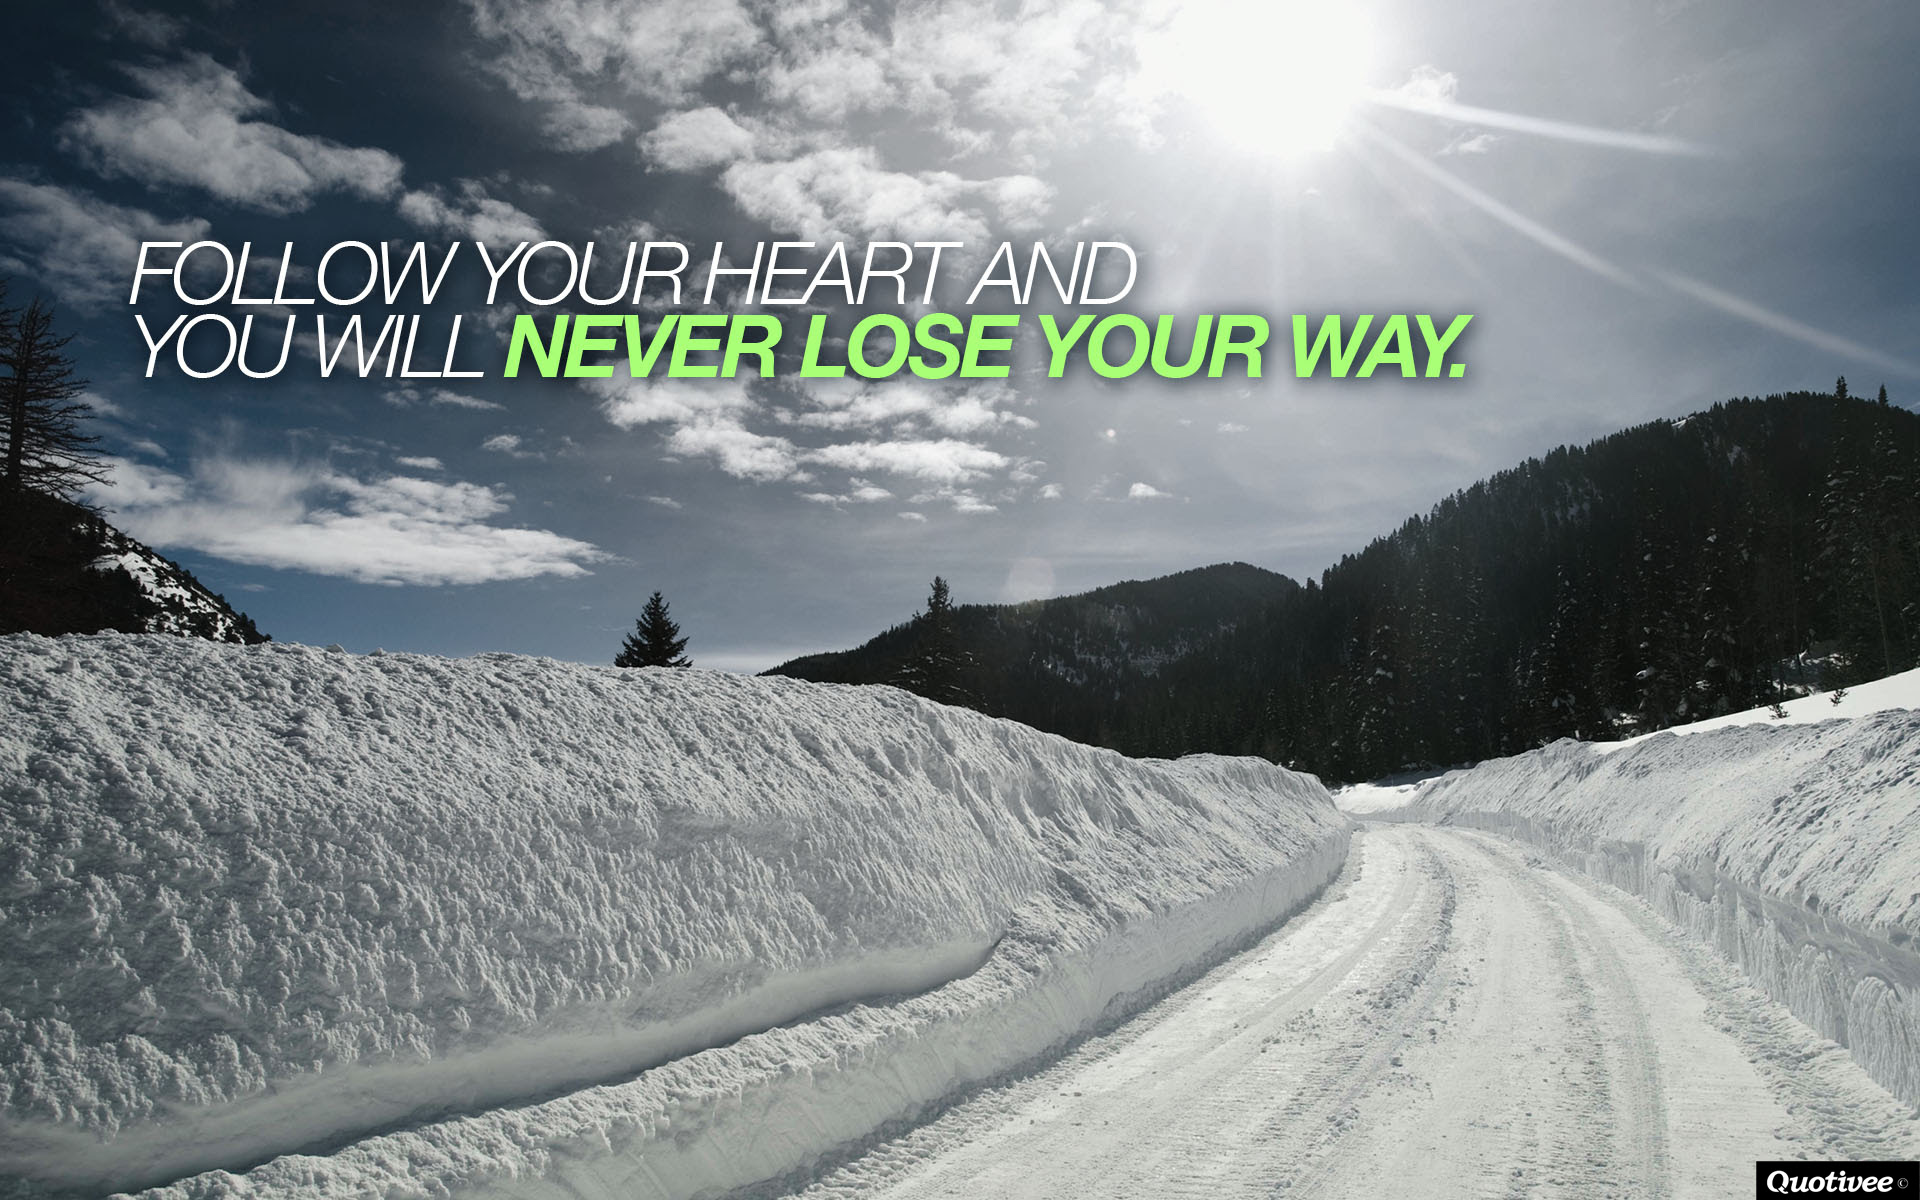 Follow Your Heart Inspirational Quotes Quotivee